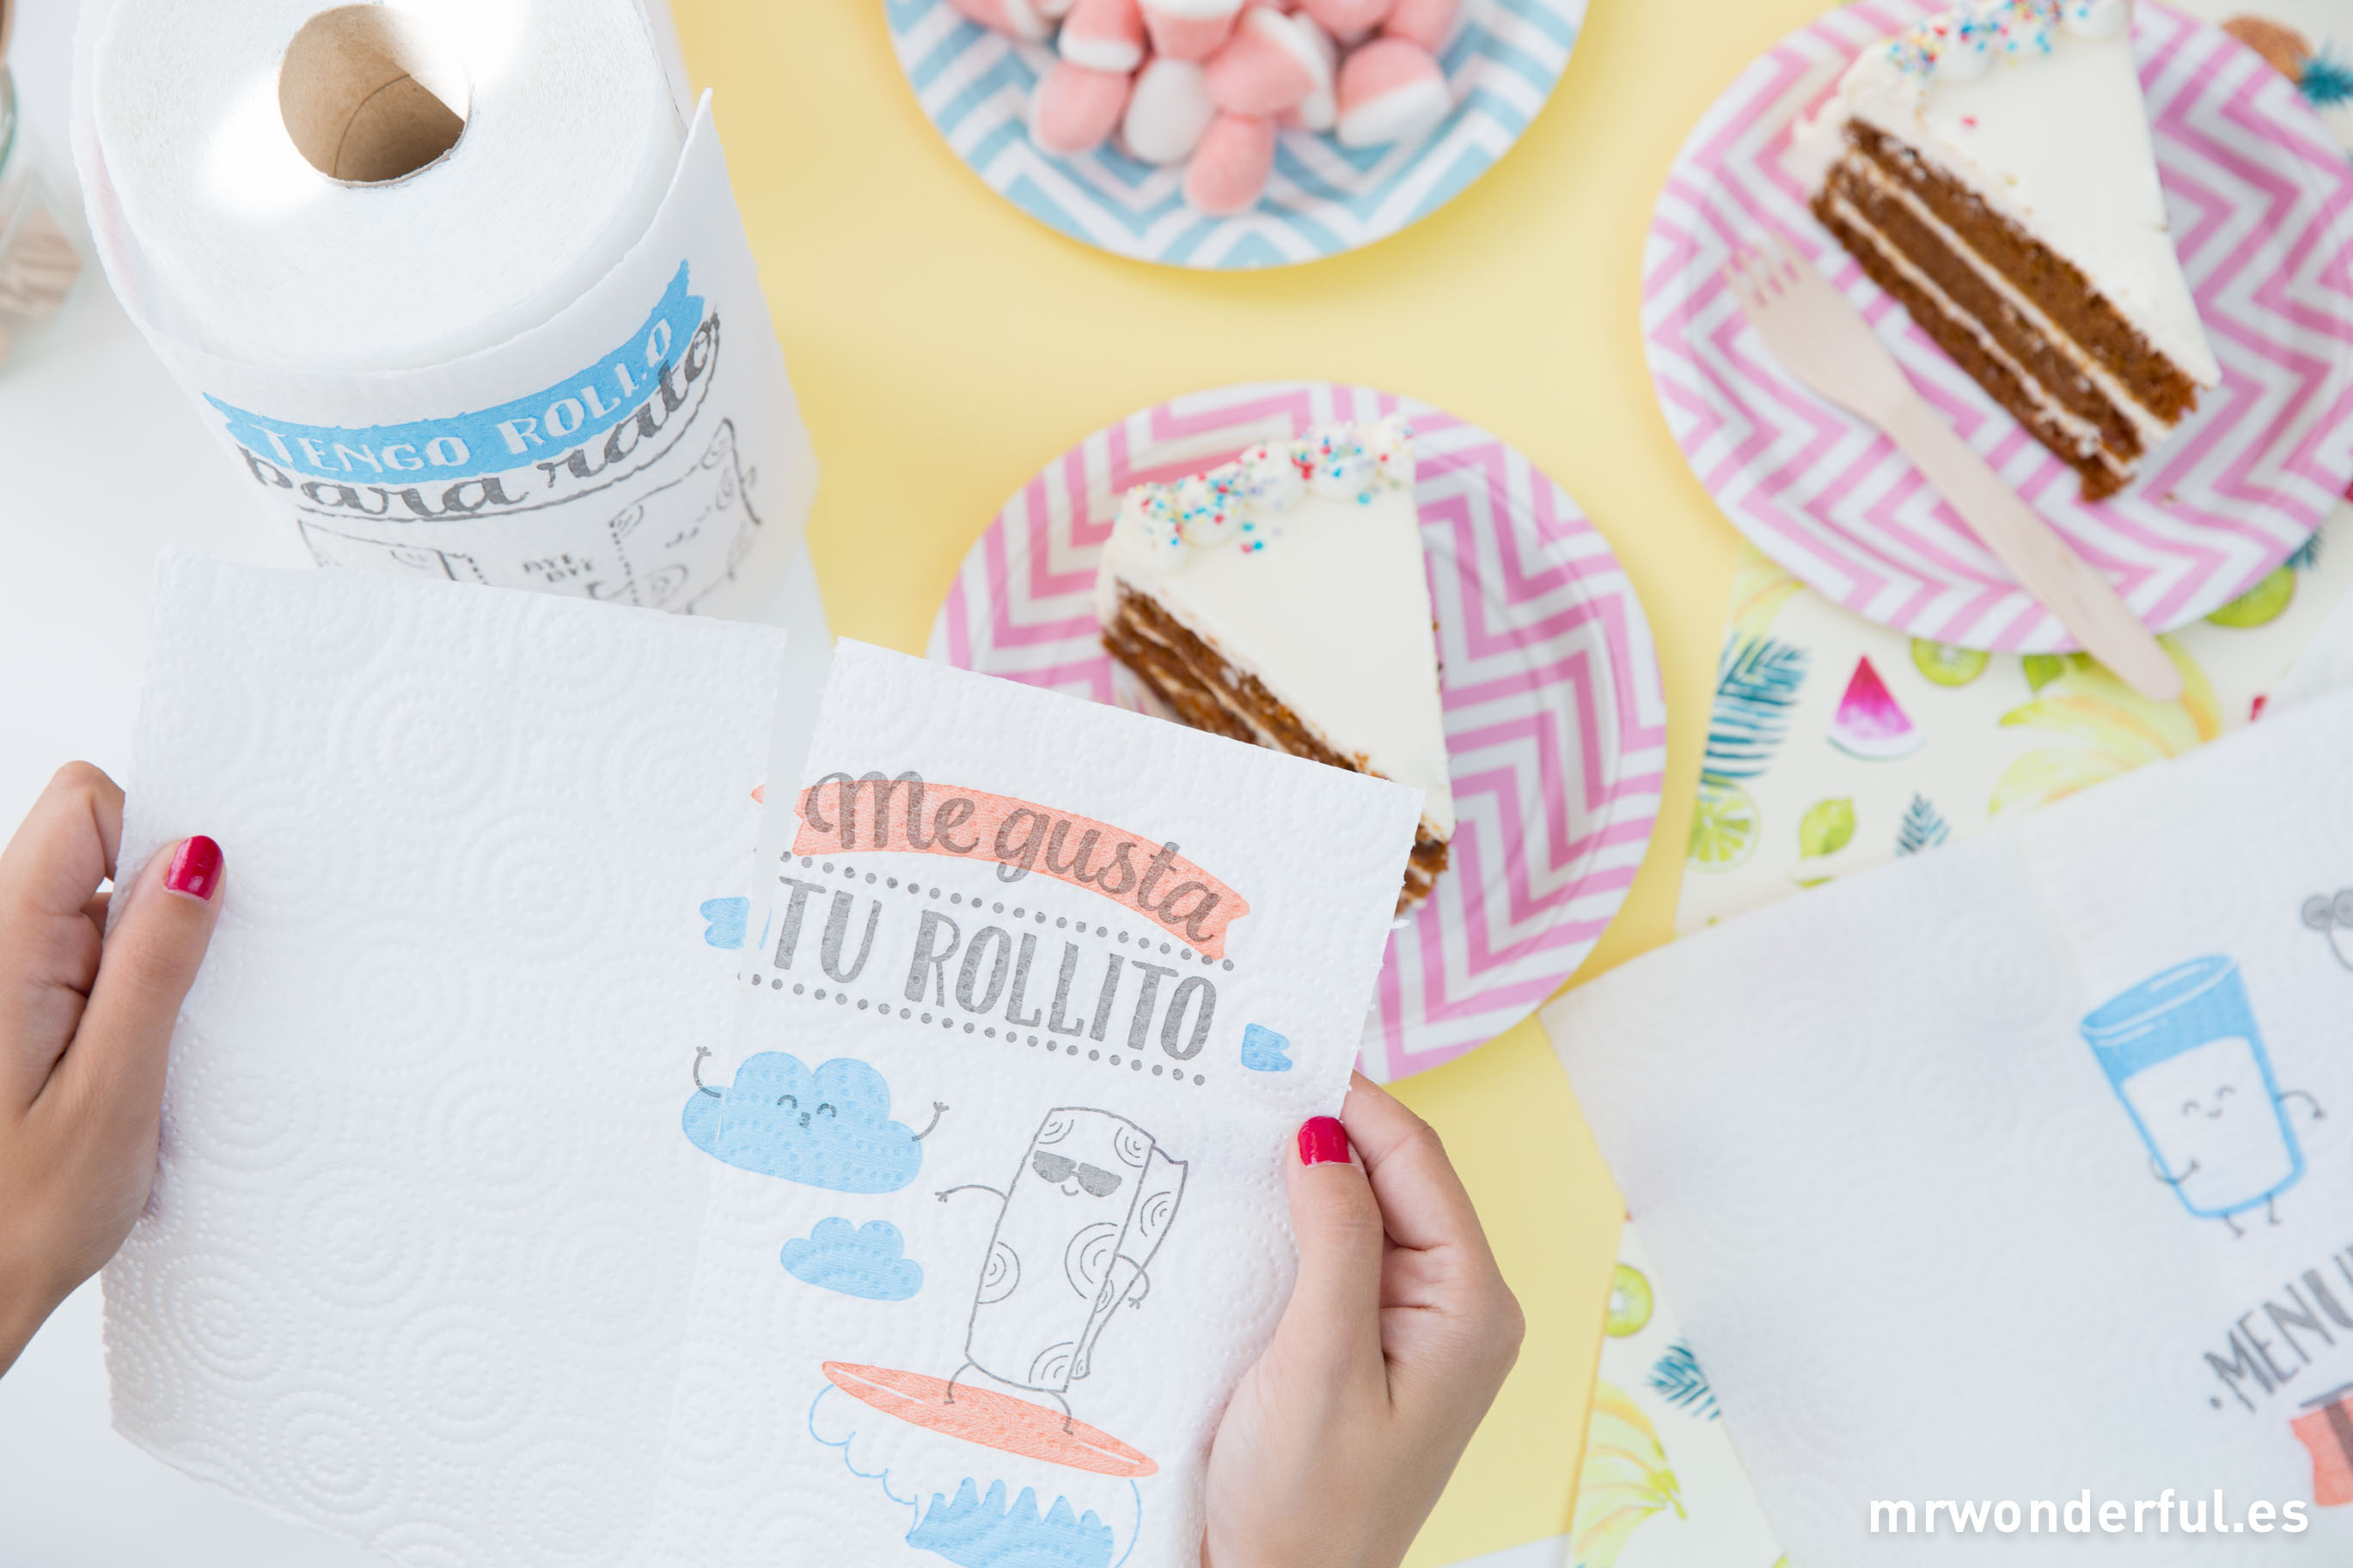 mrwonderful_colohogar-2015-papel-51